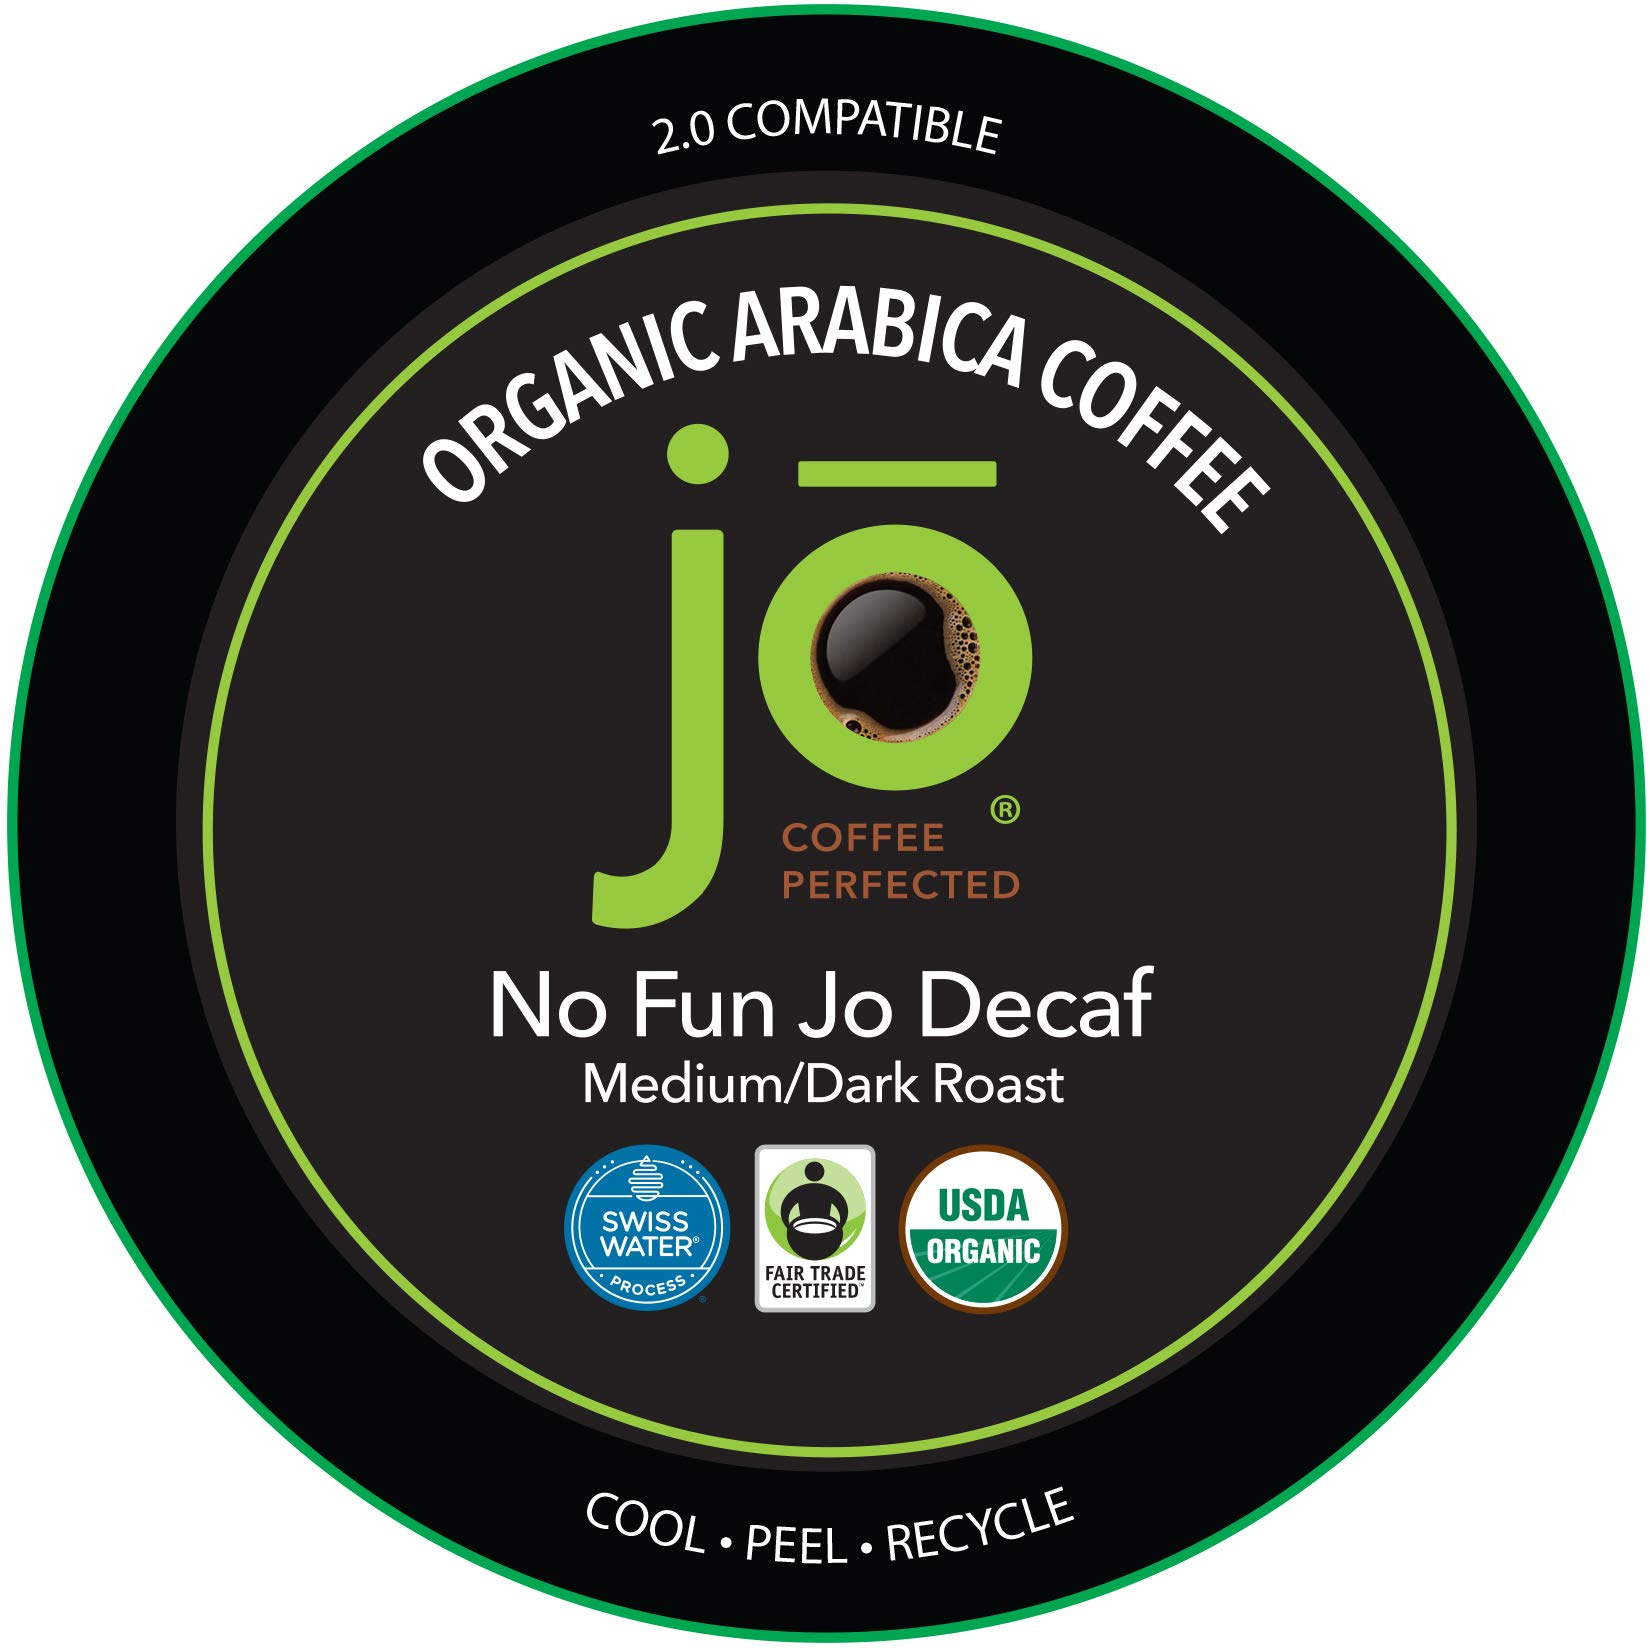 NO FUN JO DECAF: 24 Cup Fresh Seal Organic Coffee Pods, Eco-Friendly Recyclable Single Serve Capsule for use in Keurig Compatible K-Cup Brewers, Swiss Water Process Decaf Fair Trade Medium/Dark Roast